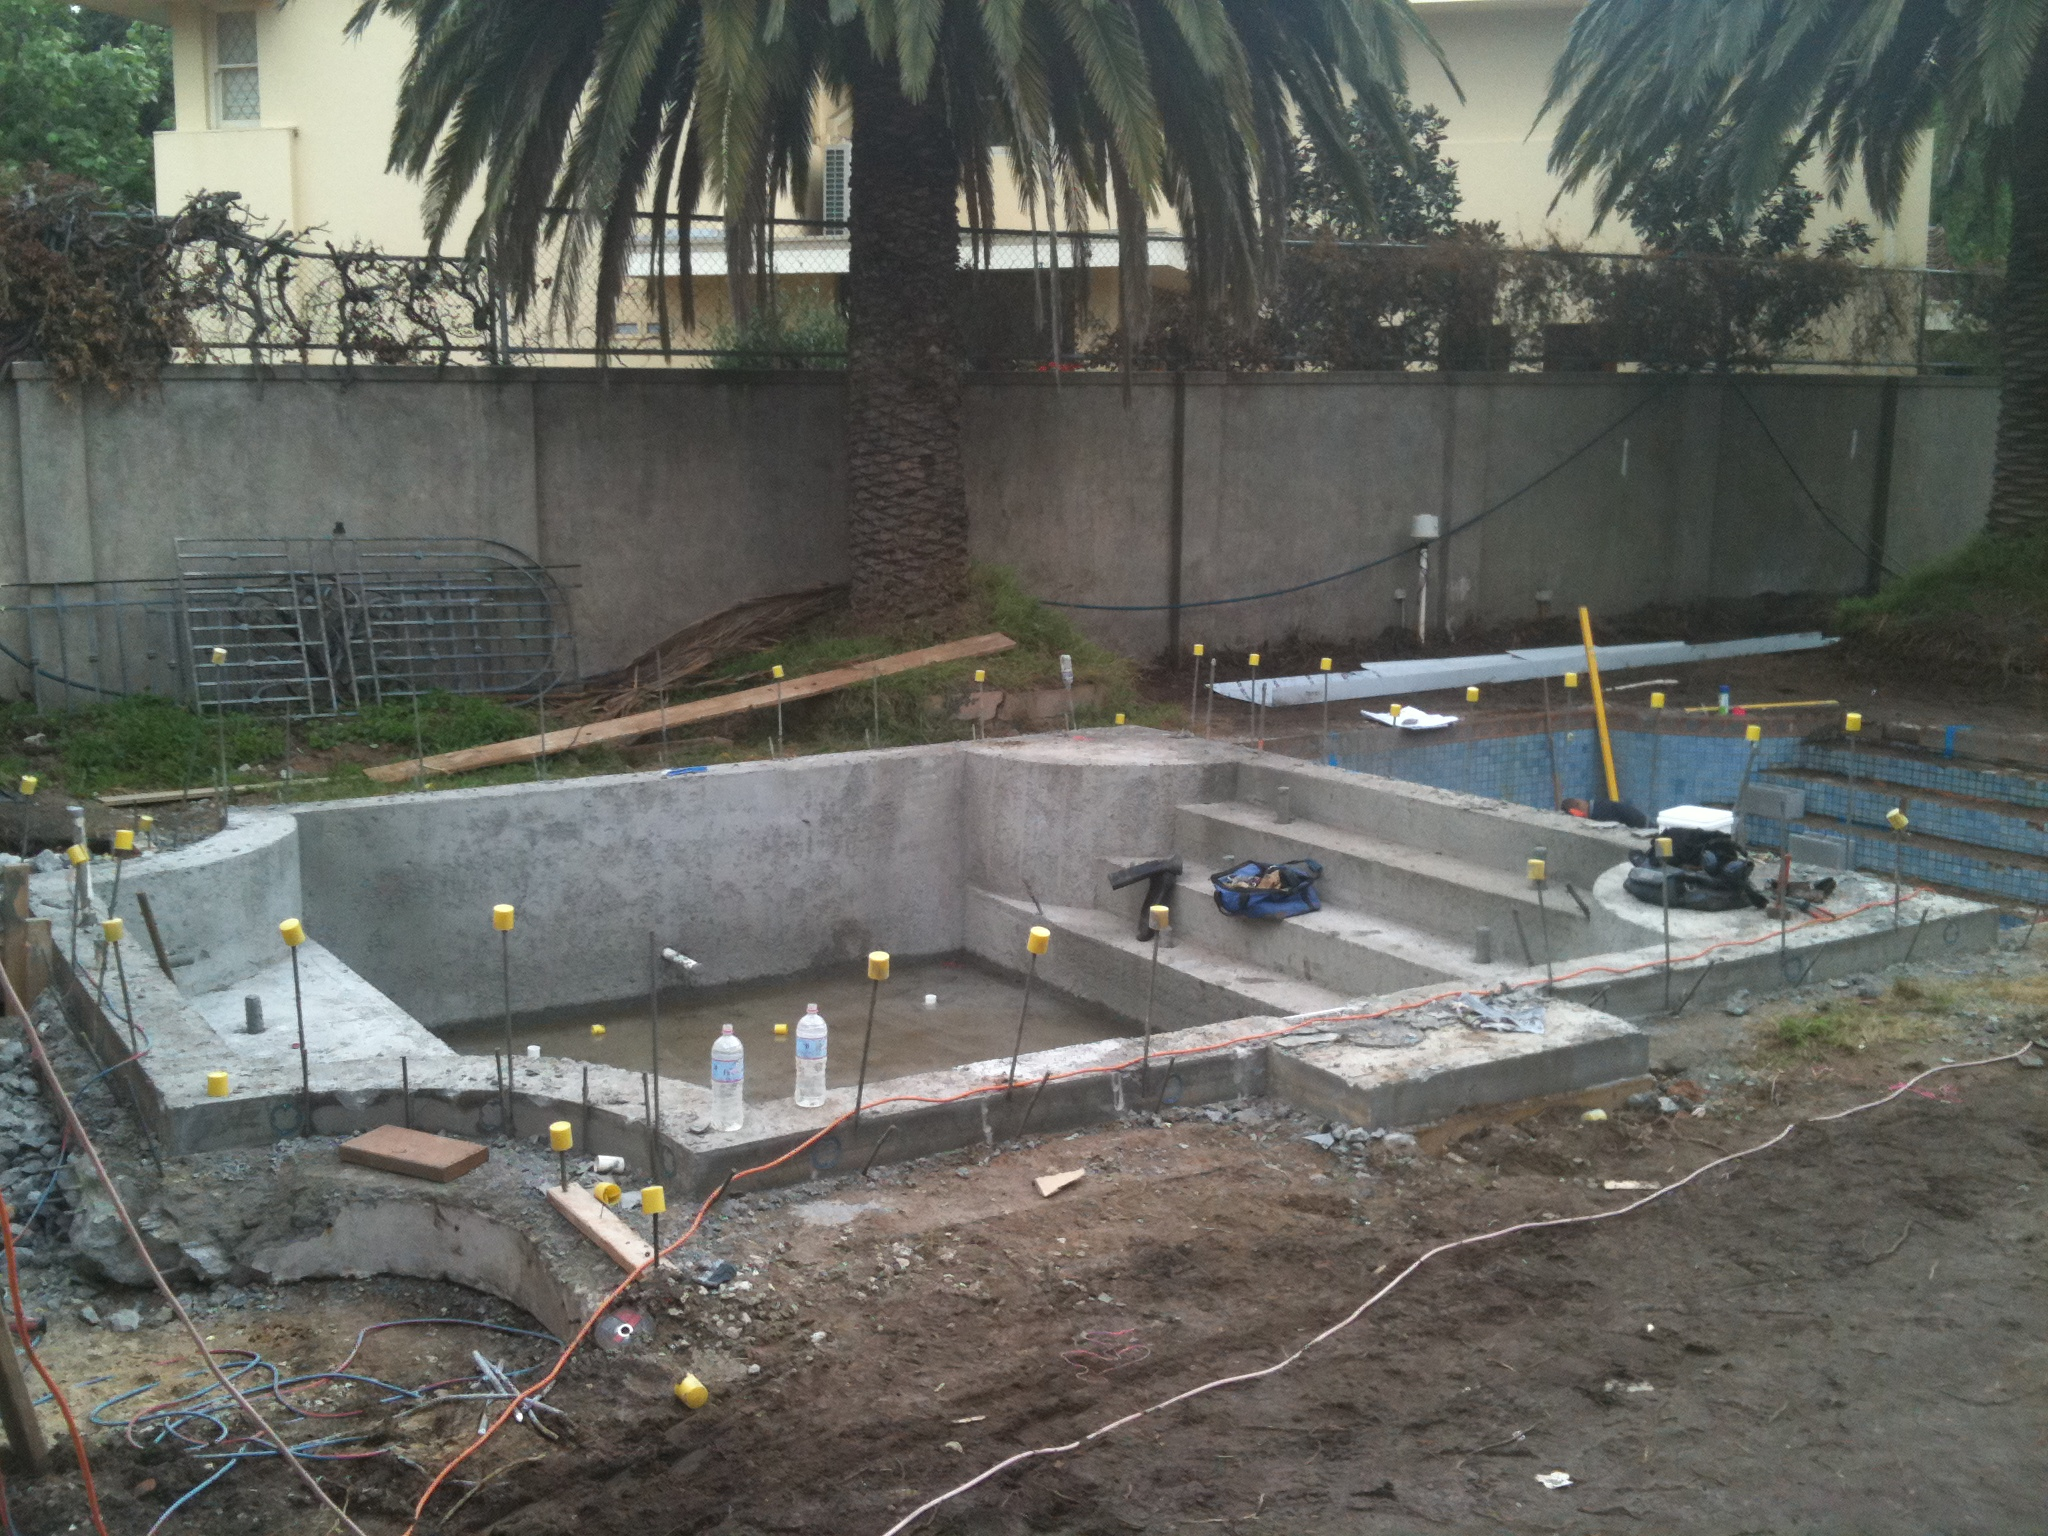 Concrete swimming pool minke pools for Concrete swimming pool construction